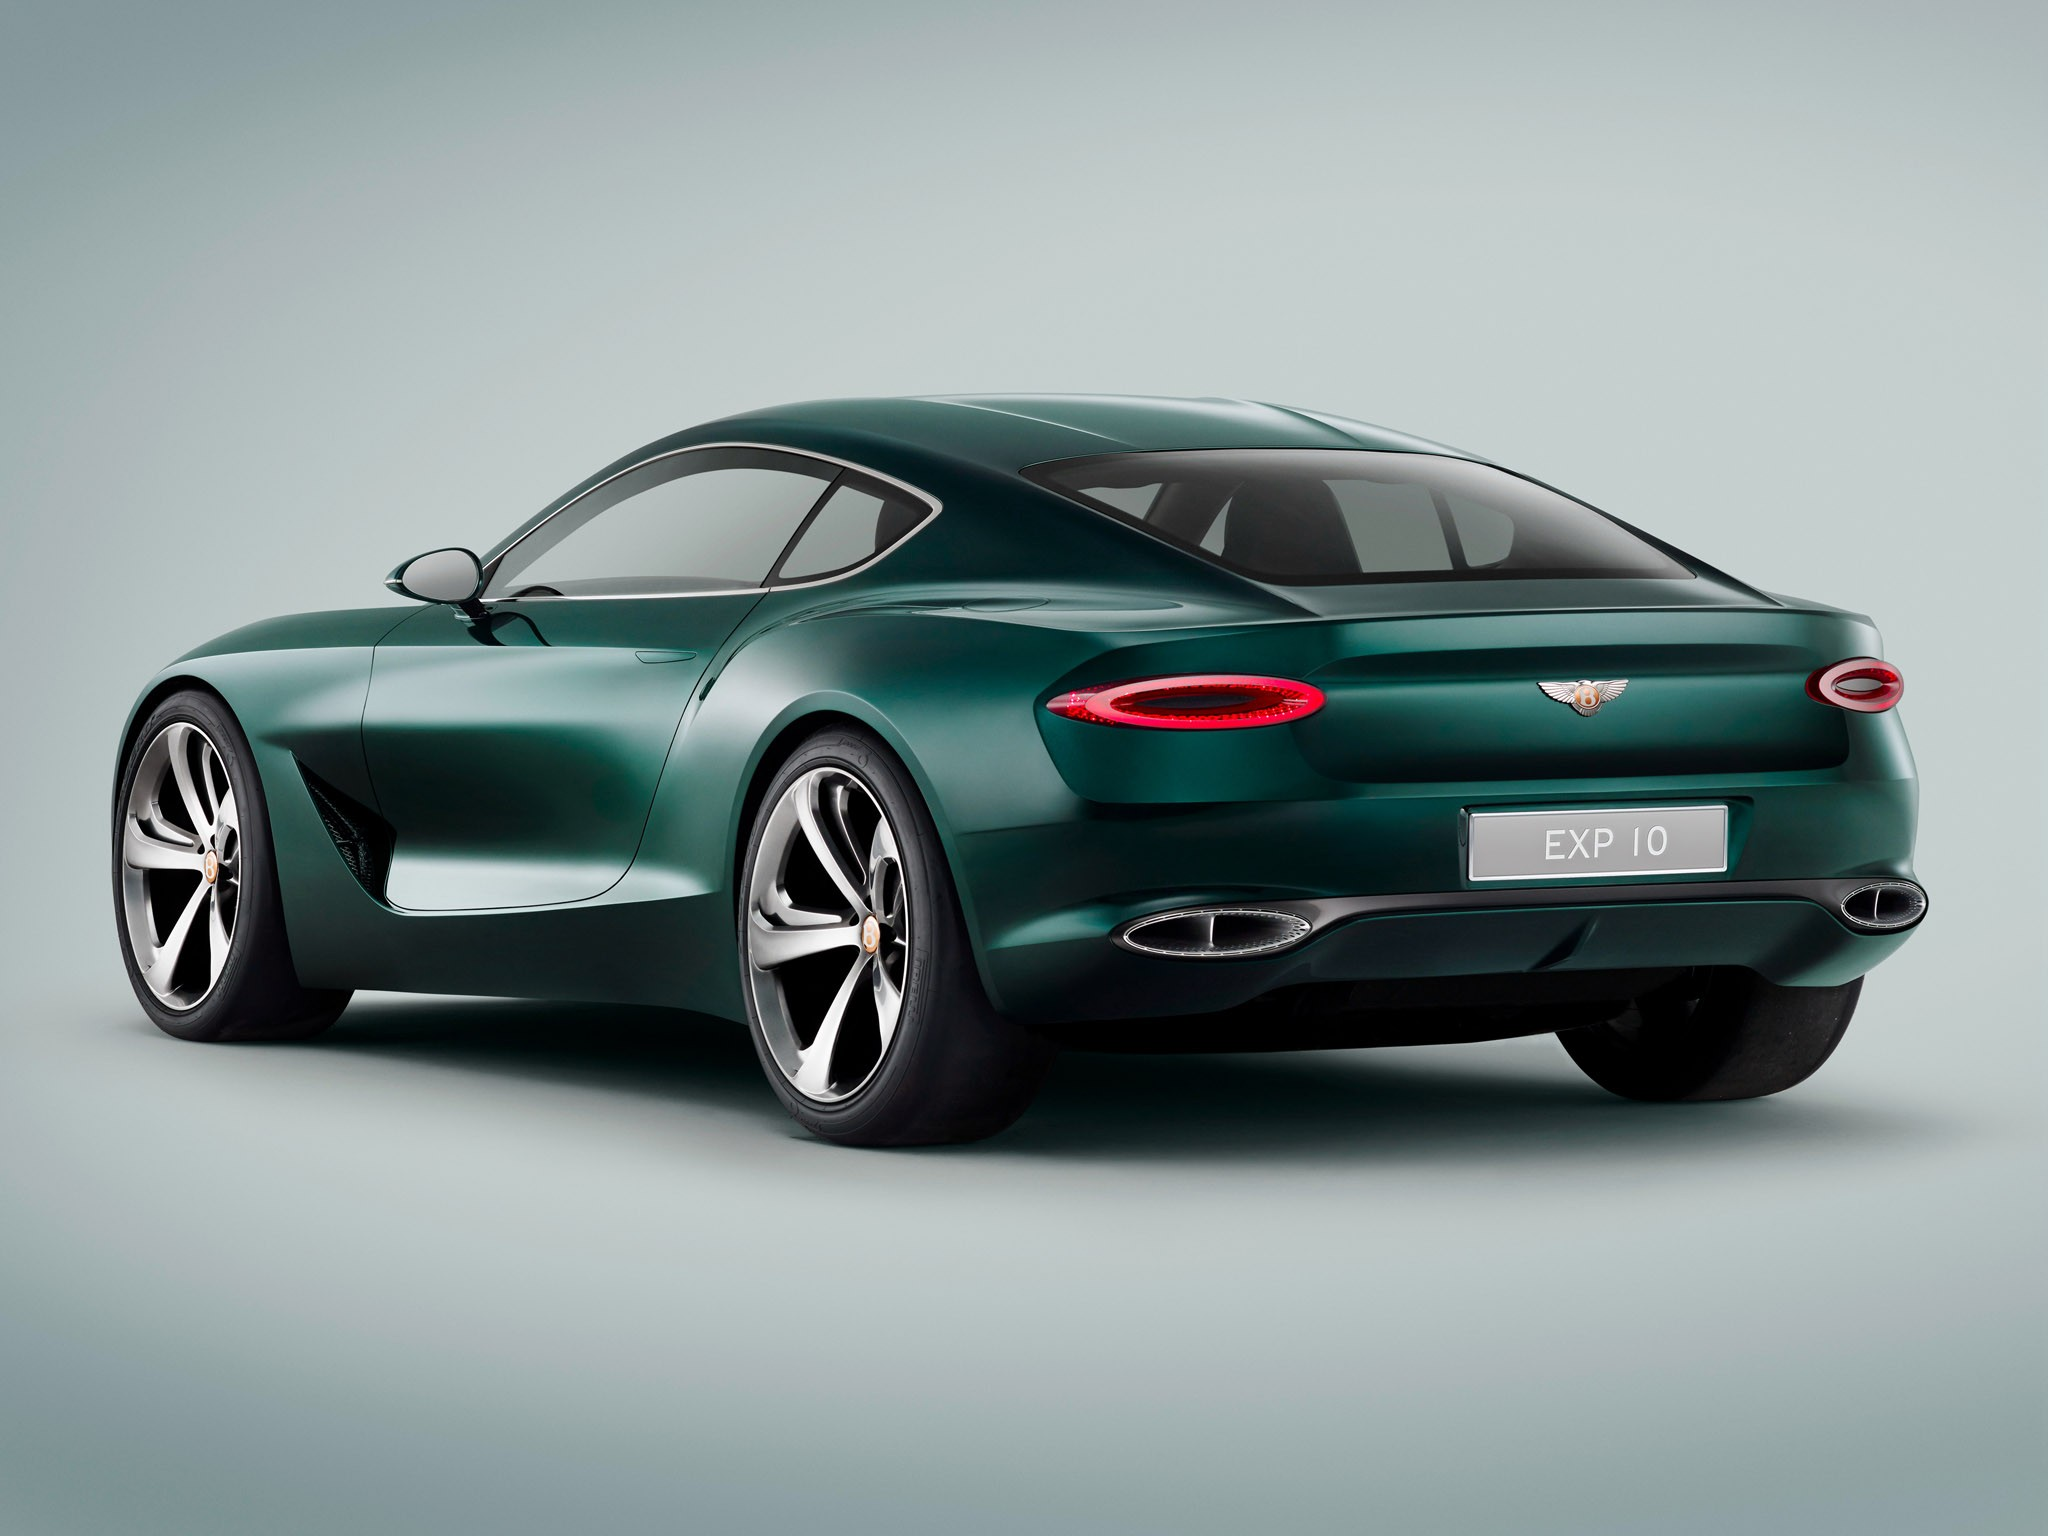 2015 Bentley EXP10 Concept